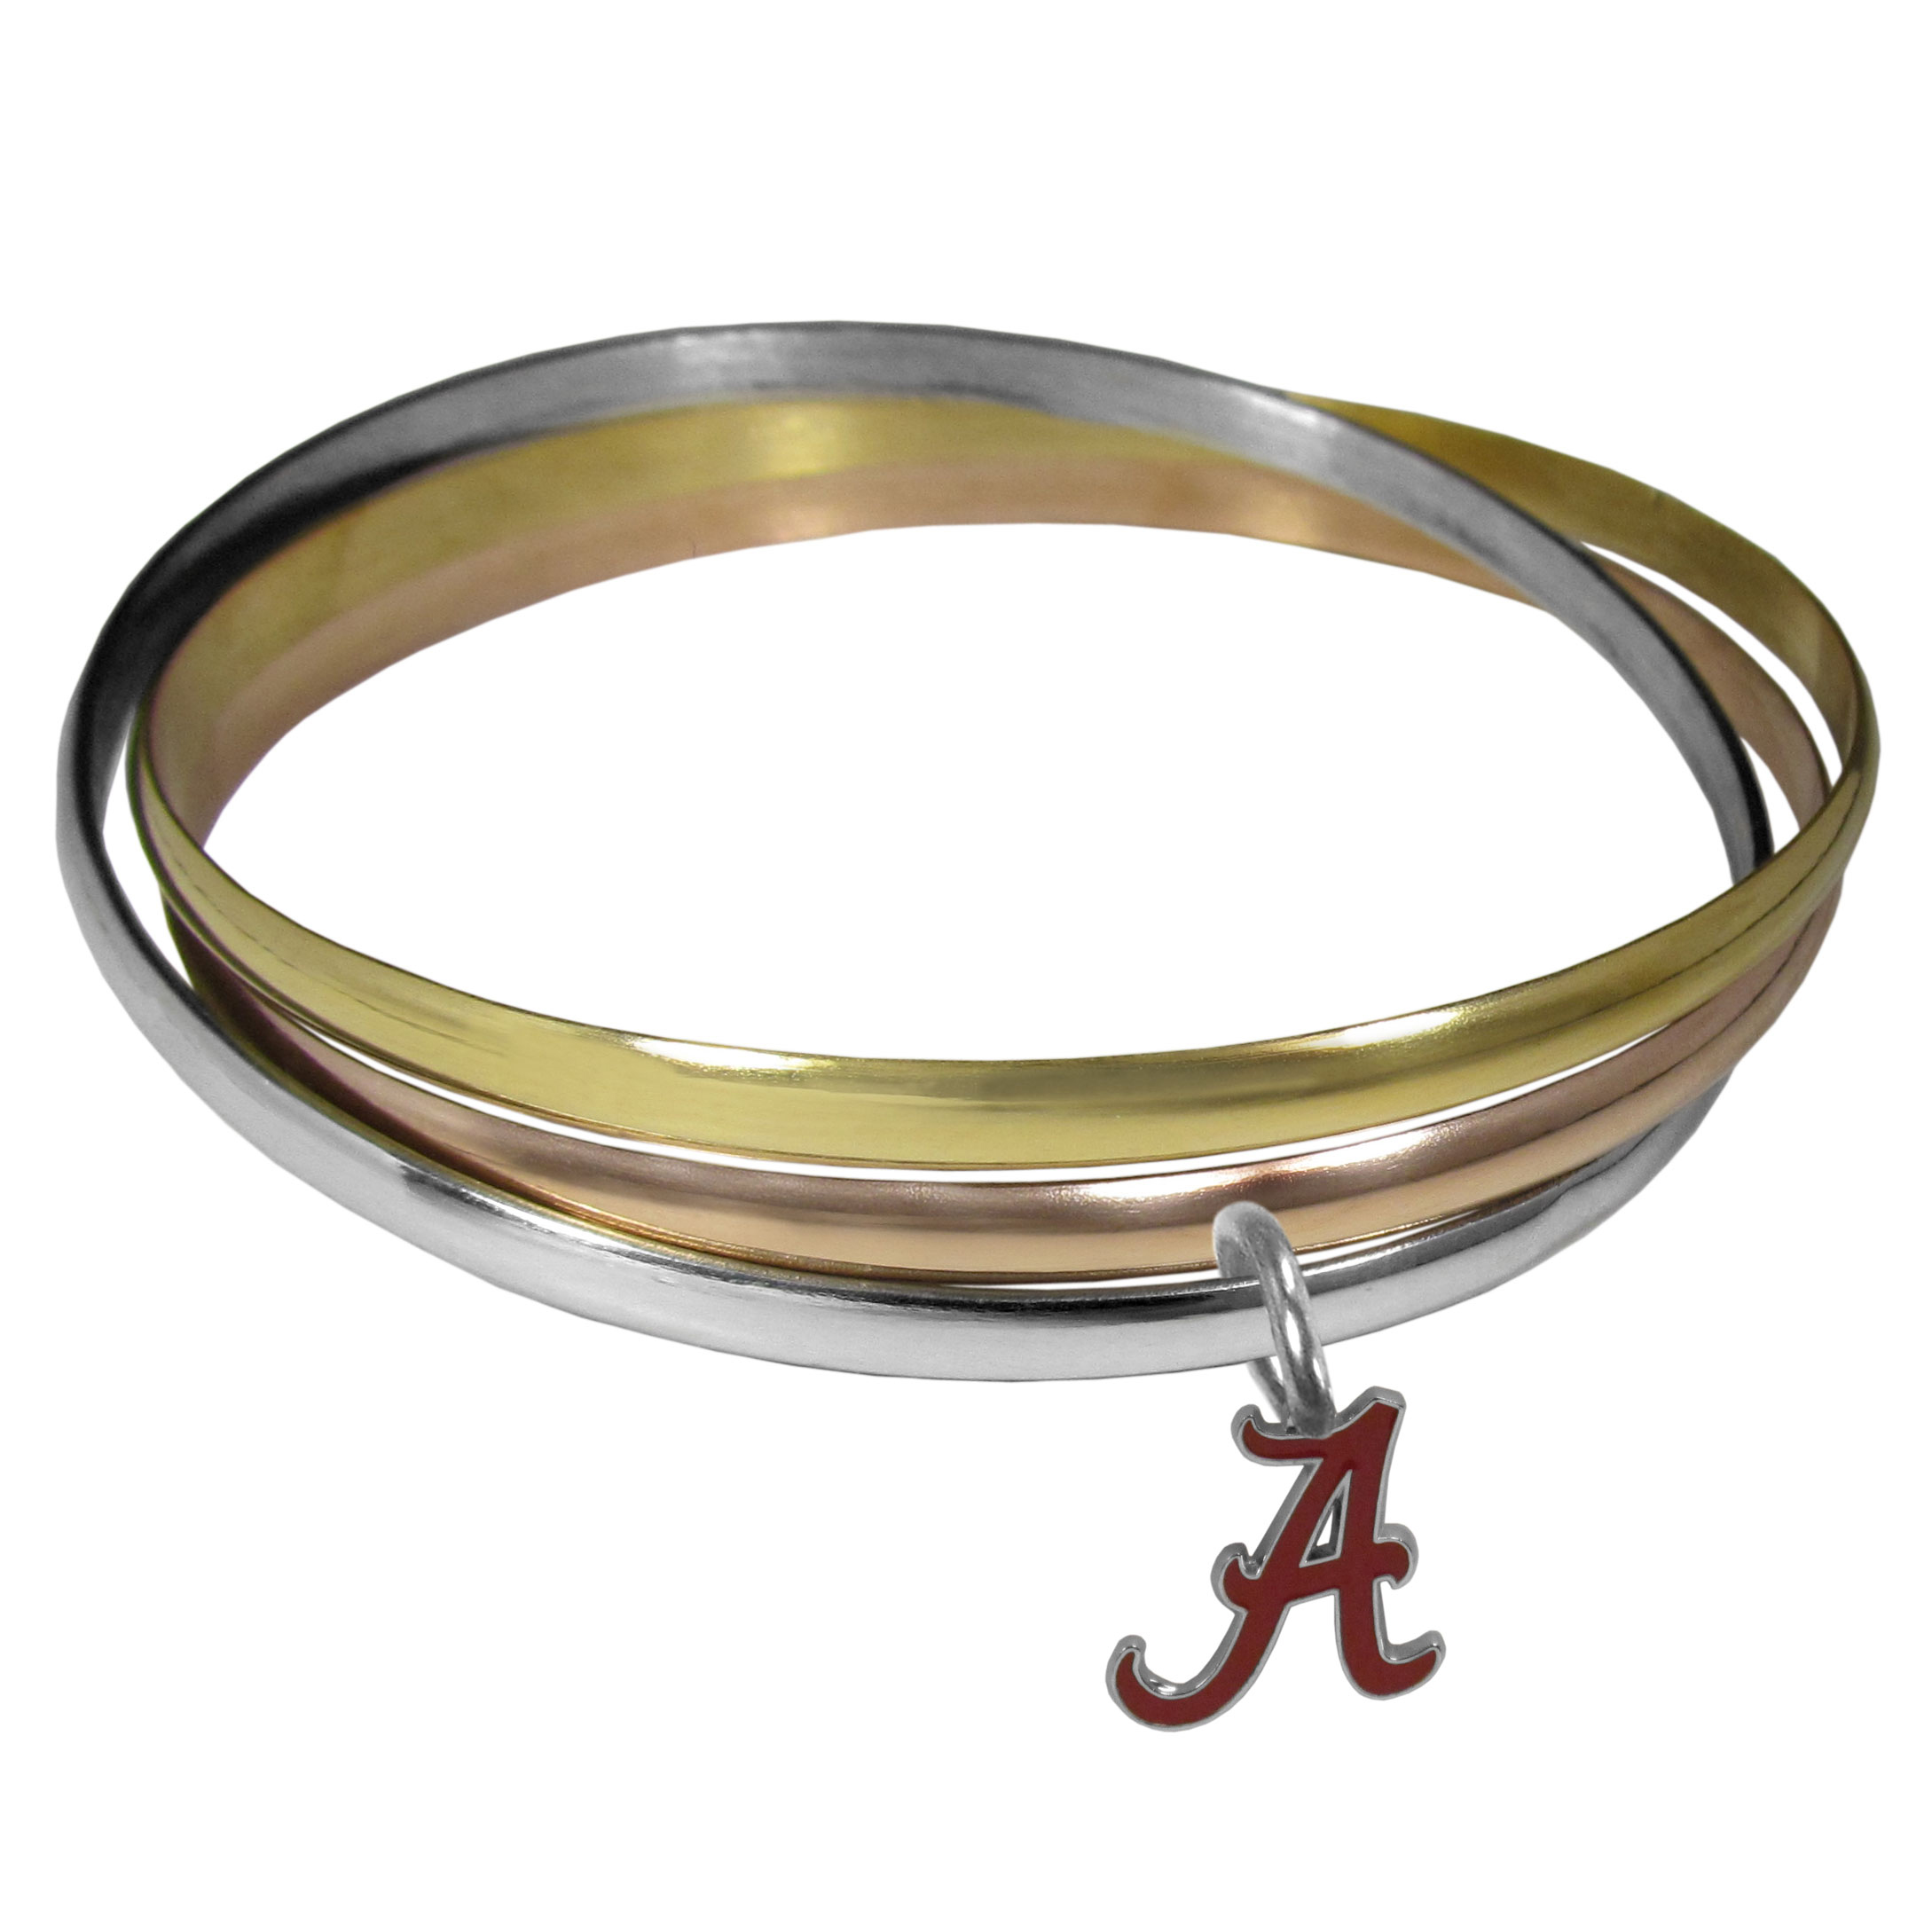 Alabama Crimson Tide Tri-color Bangle Bracelet - These beautiful bangles come in a interlocking style and feature a fully cast Alabama Crimson Tide charm with enameled team colors. The bracelet has a silver toned bangle, gold tone bangle and brass toned bangle.